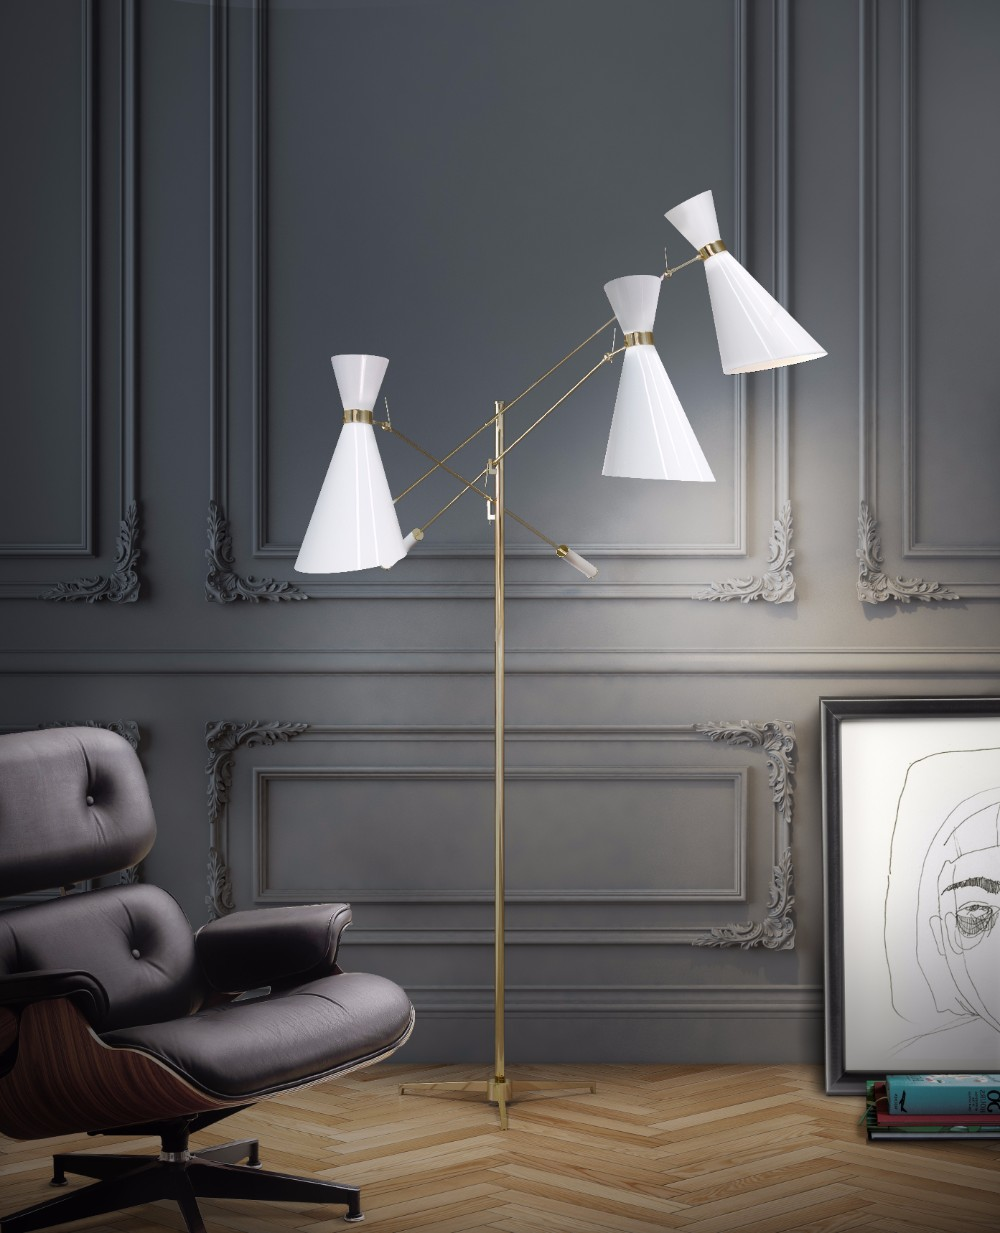 The Story Of How White Lamps Will Change Your Winter Decorations 4 white lamps